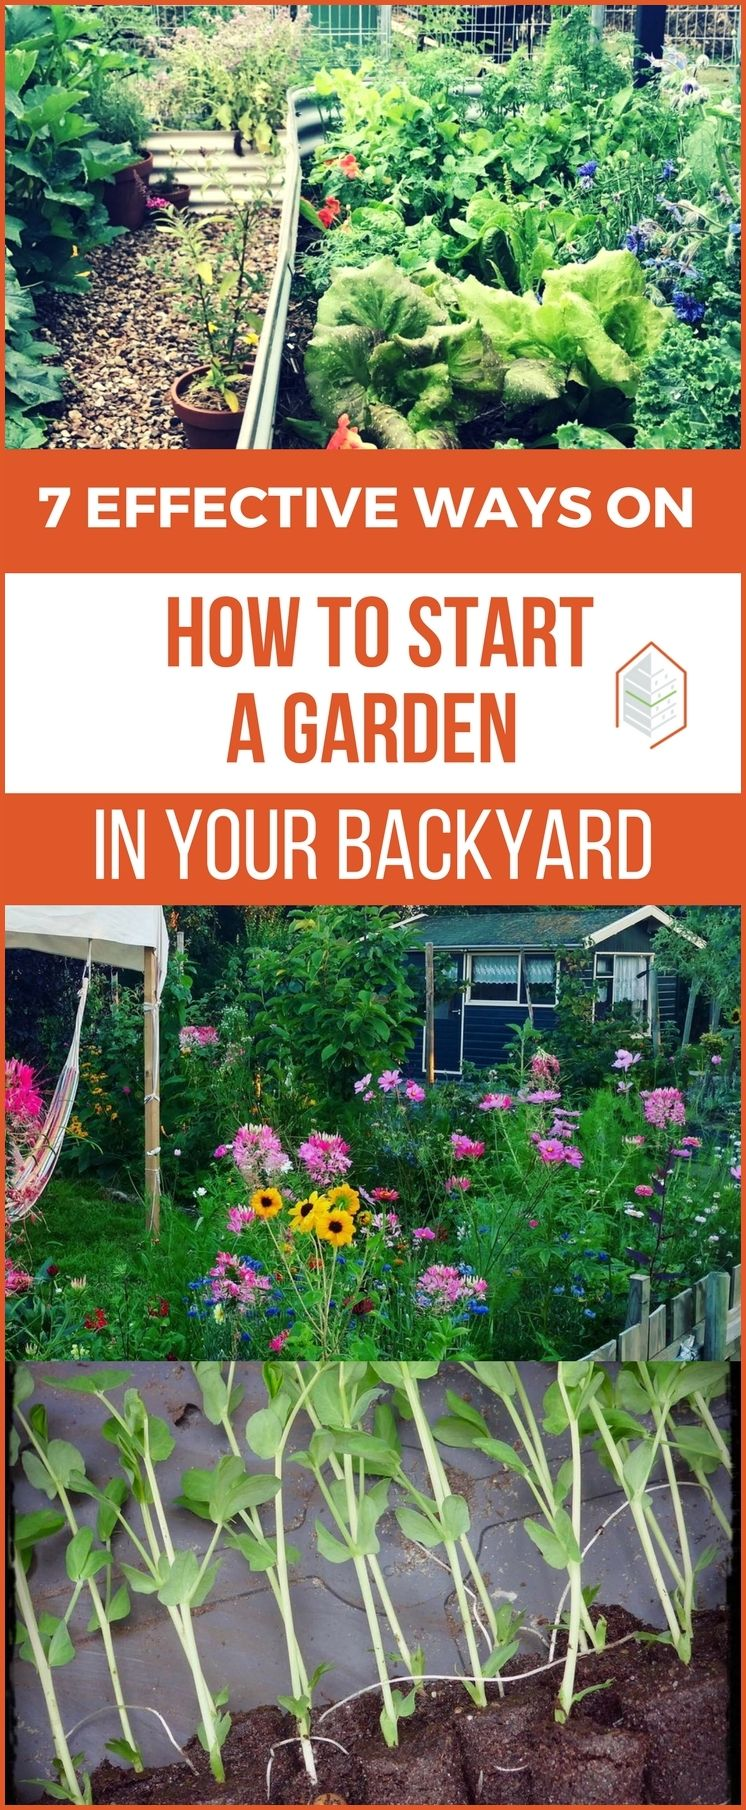 High Quality 7 Effective Ways On How To Start A Garden In Your Backyard. How To Start A  Garden In Your Backyard? Here Are 7 Effective Ways. It Is Really Easier  Than You ...